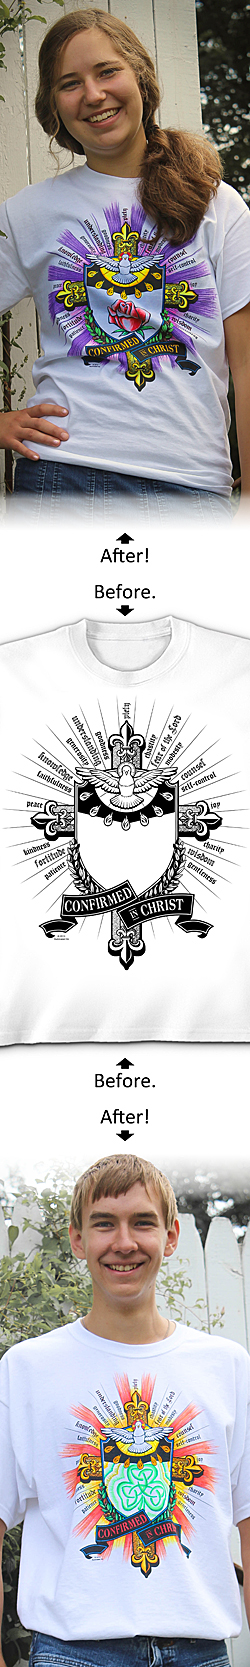 SanctaTee – Confirmed In Christ